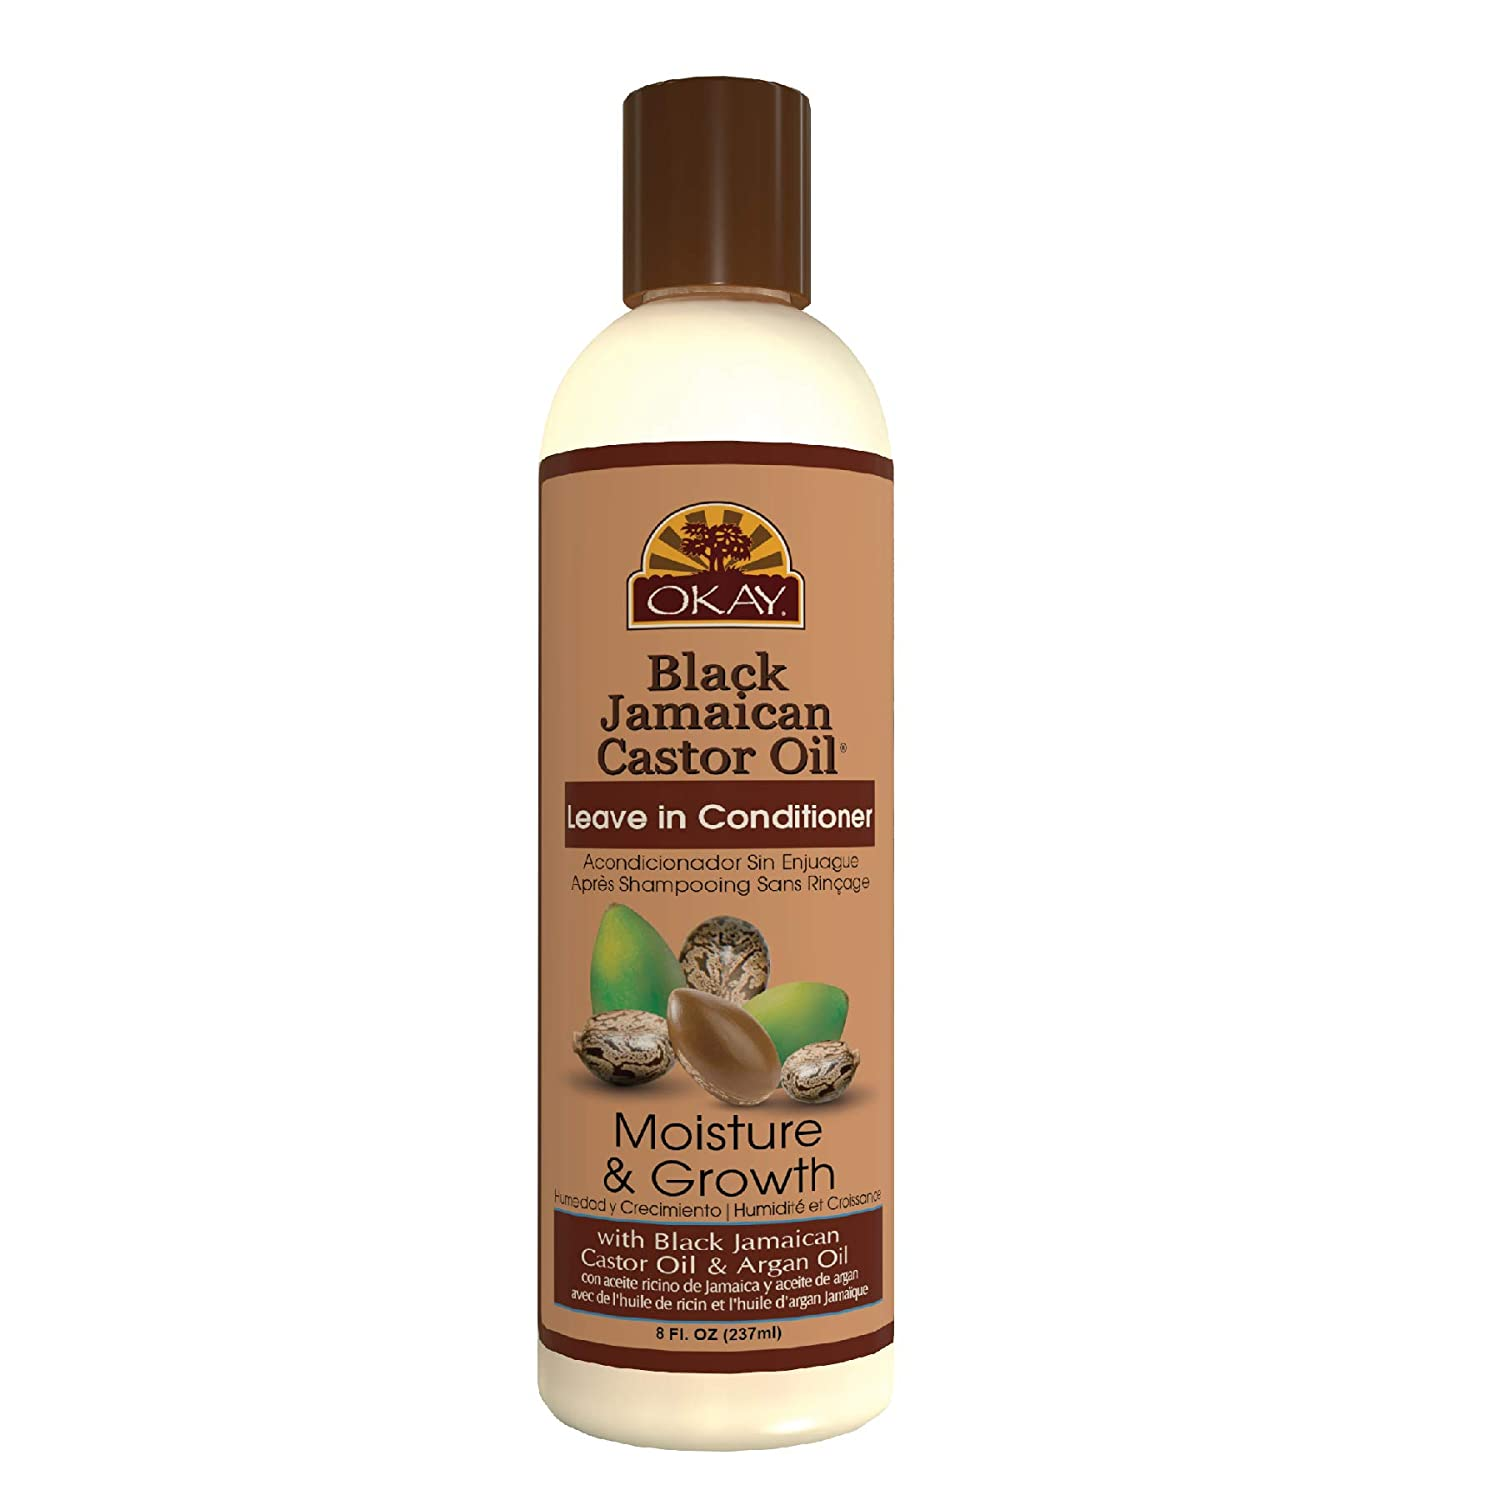 OKAY | Black Jamaican Castor Oil Leave In Conditioner | All Hair Types/Textures | Repair - Moisturize - Grow Healthy Hair | with Argan Oil & Shea Butter | Free Of Parabens, Silicones, Sulfates | 8 Oz